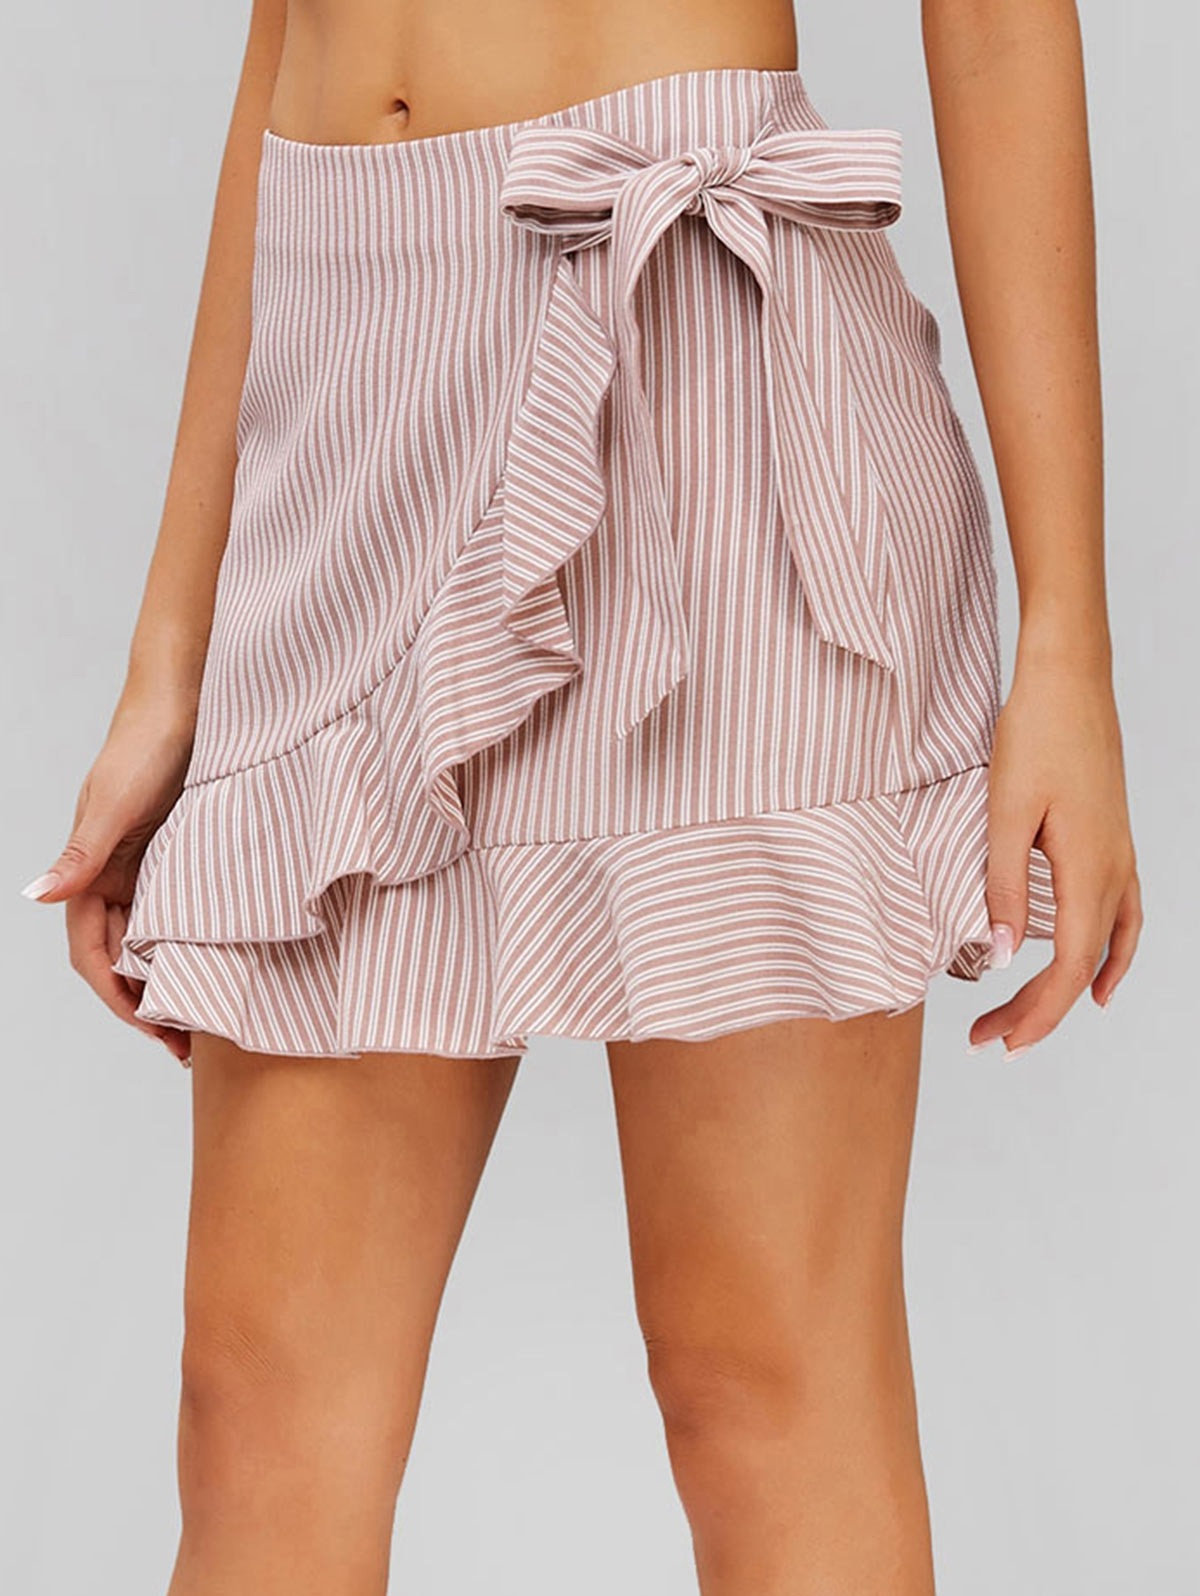 Ruffle Knot Striped Skirt